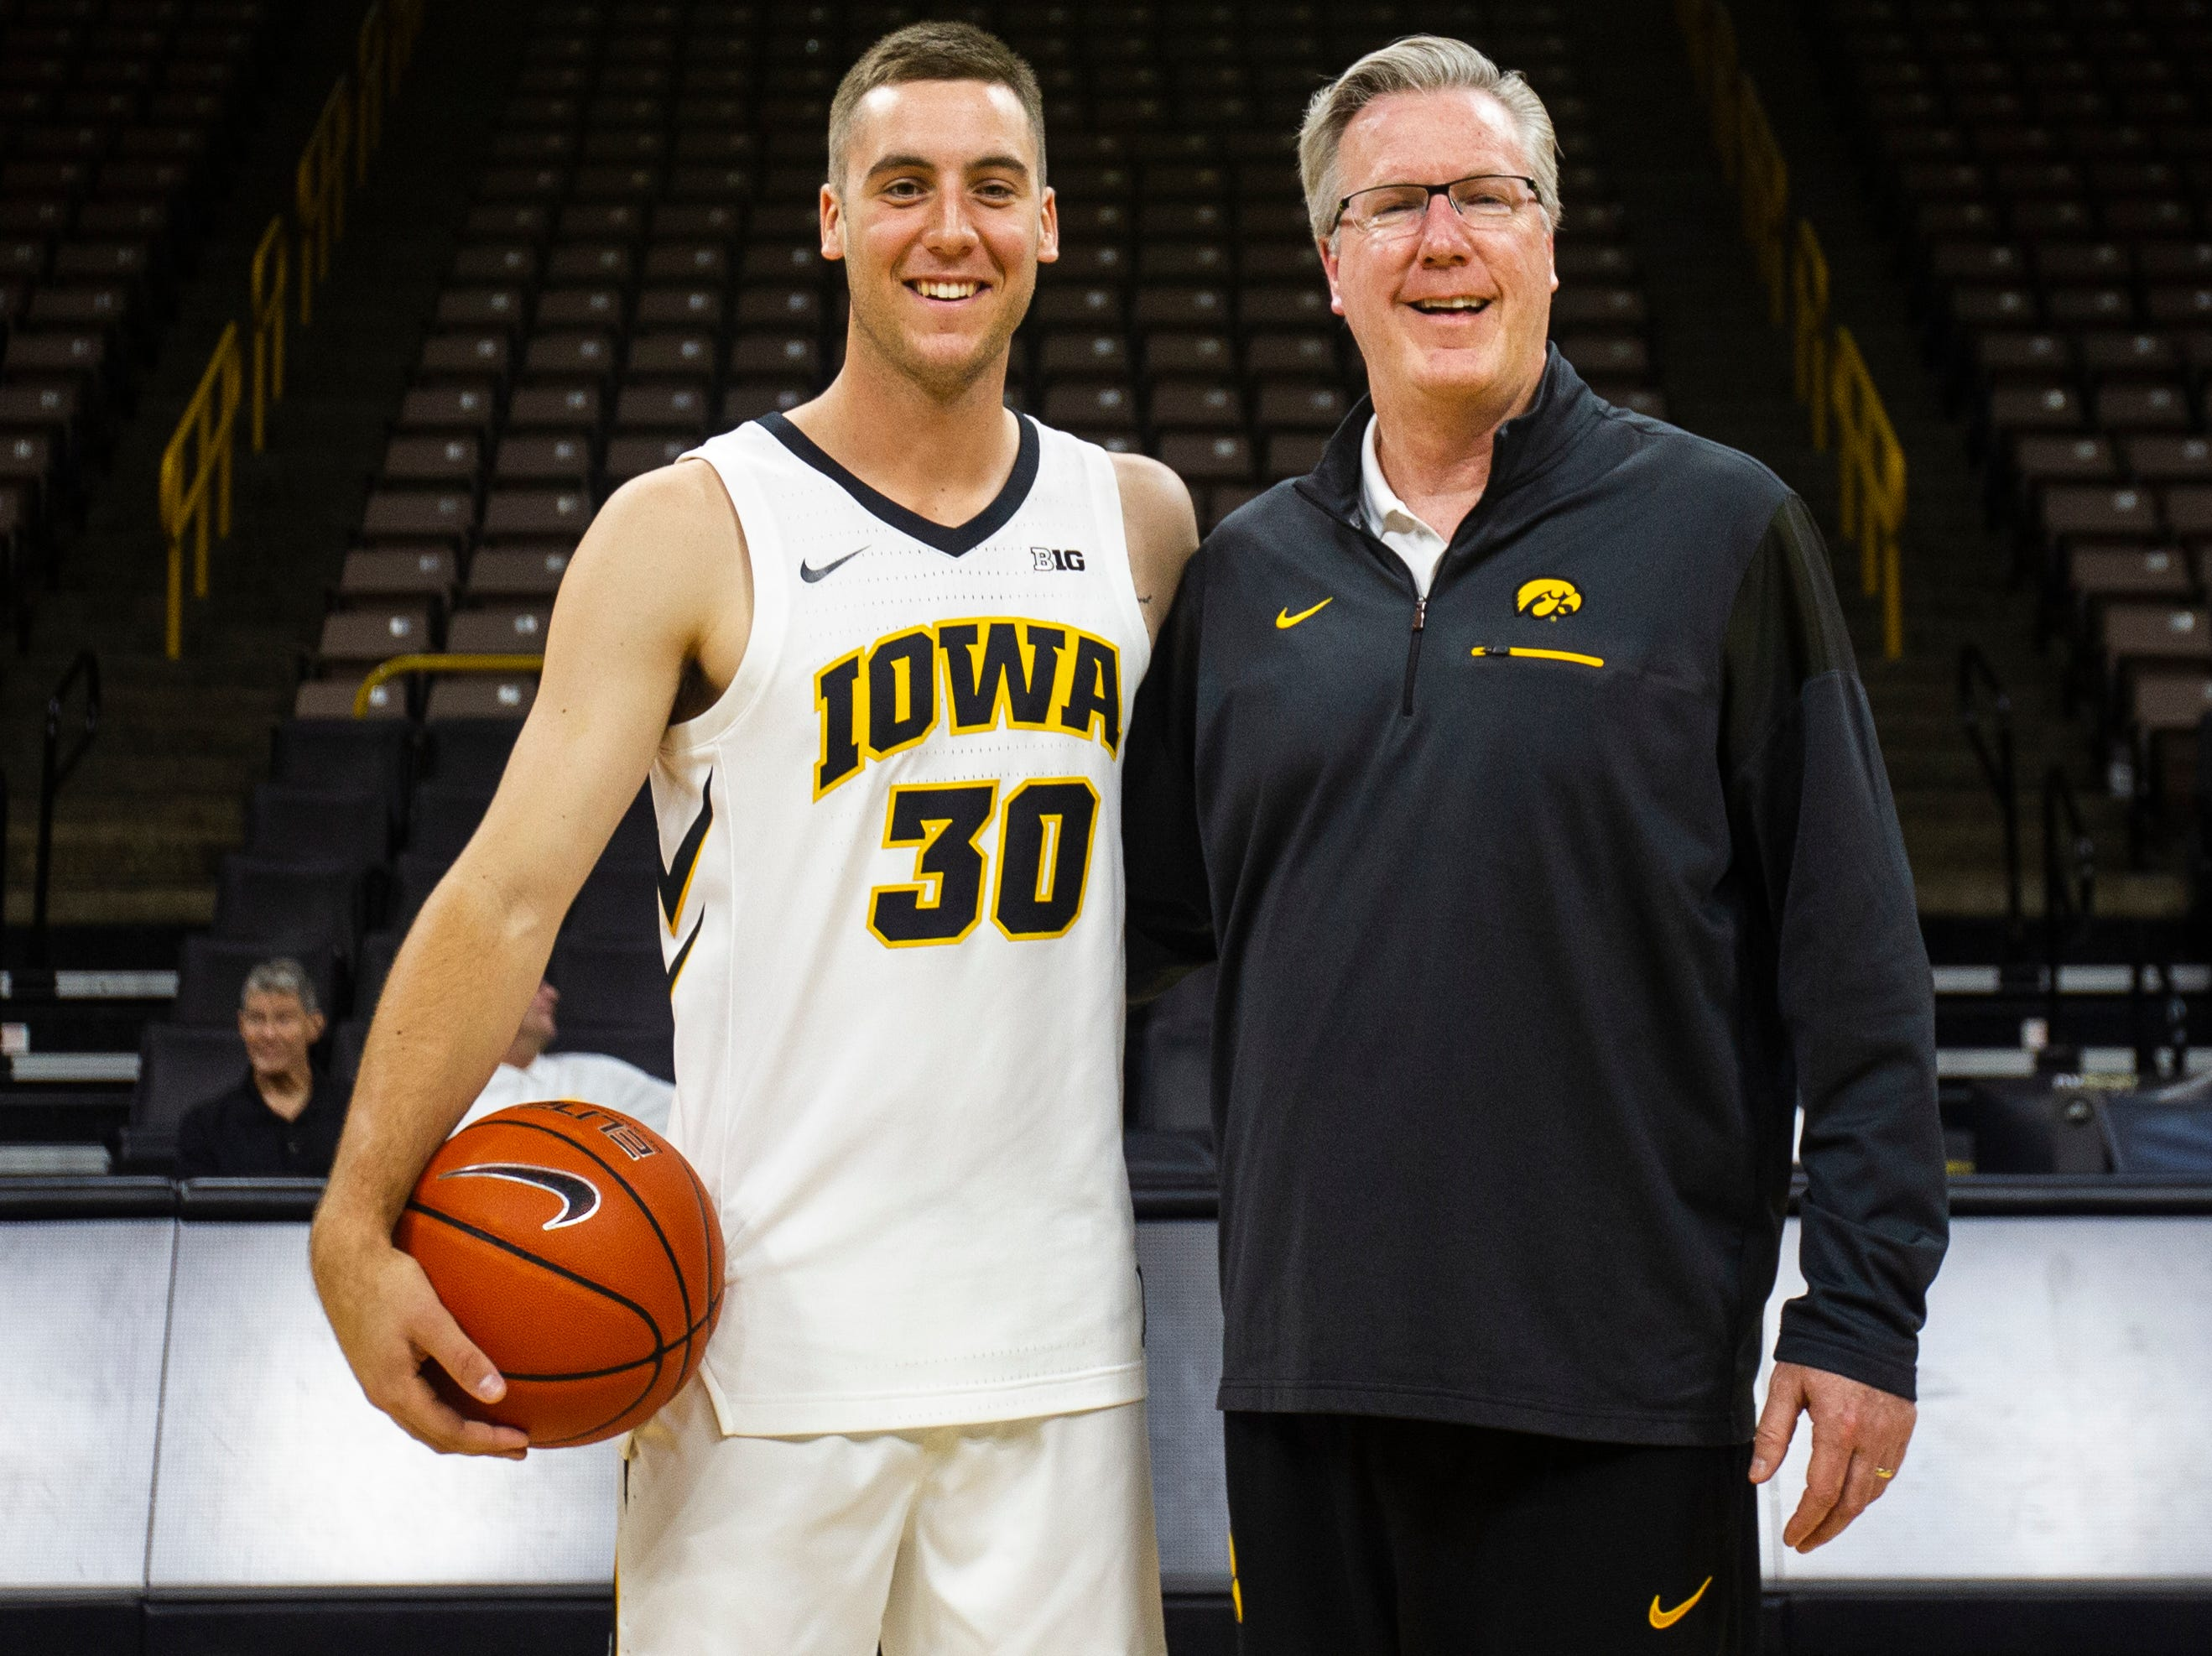 Iowa guard Connor McCaffery stands with his father Iowa men's basketball head coach Fran McCaffery for a photo during Iowa men's basketball media day on Monday, Oct. 8, 2018, at Carver-Hawkeye Arena in Iowa City.